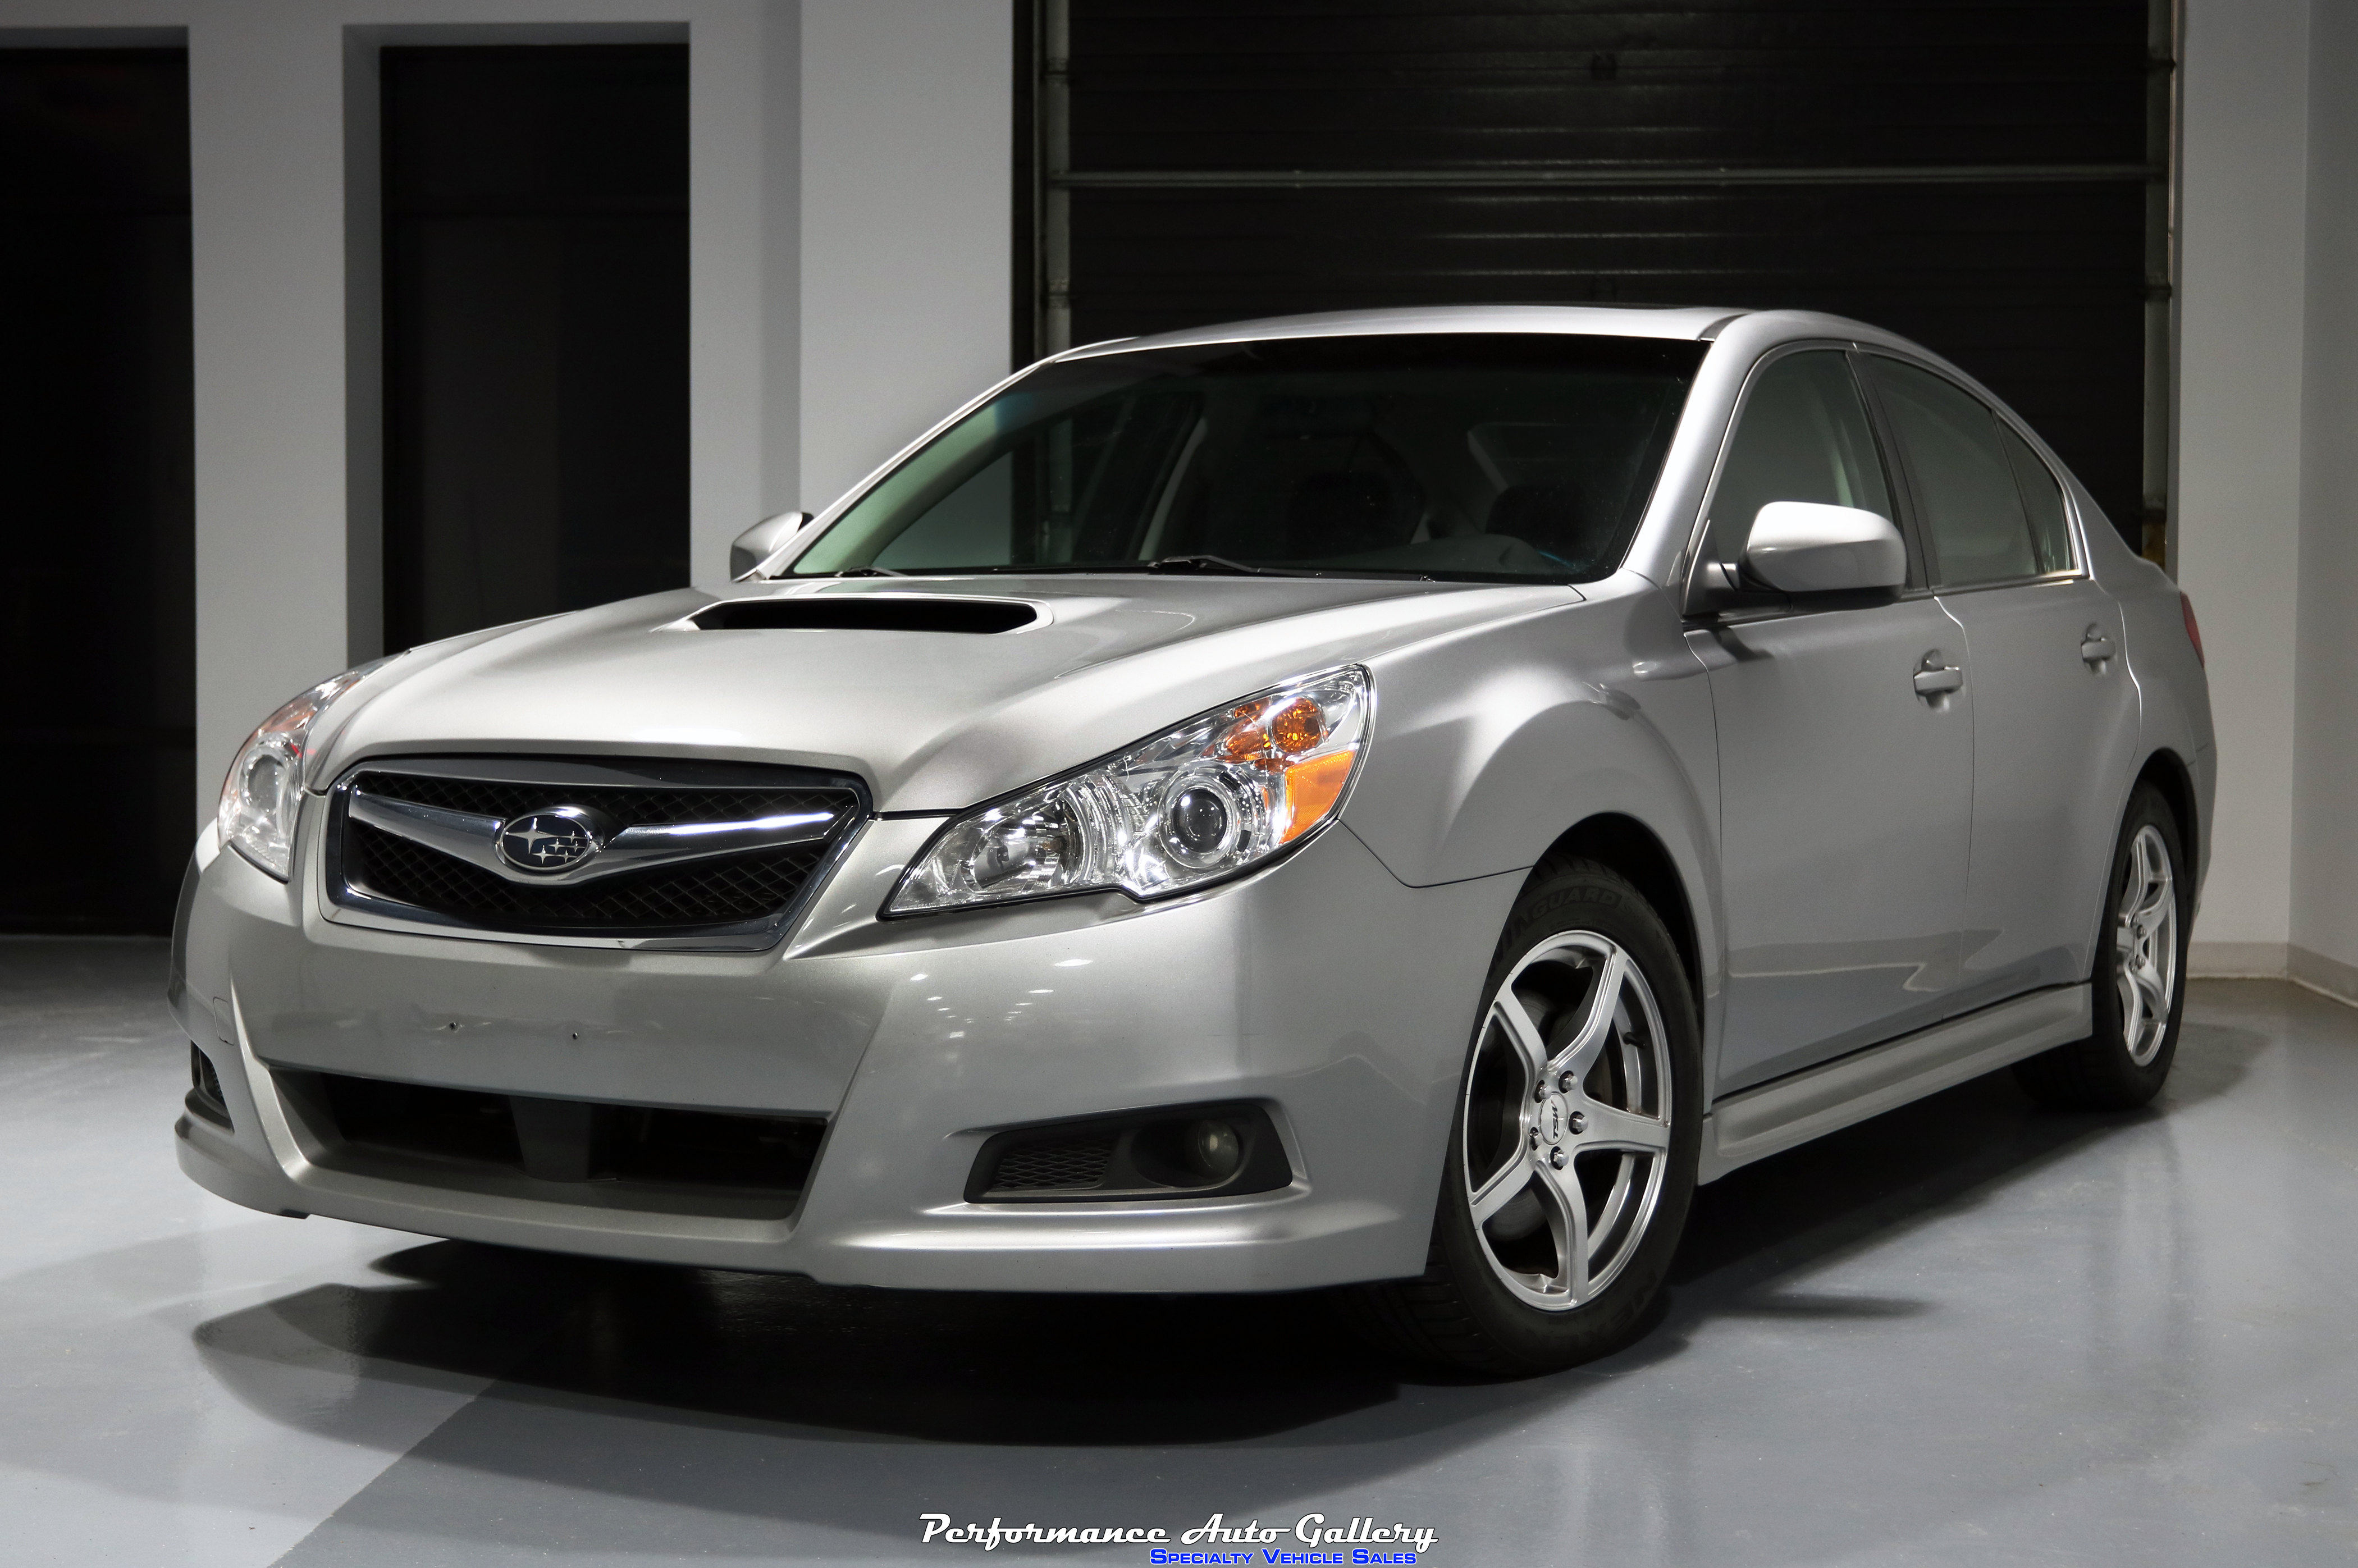 New Arrival- 2011 Subaru Legacy 2.5GT Limited for Sale! Rare!